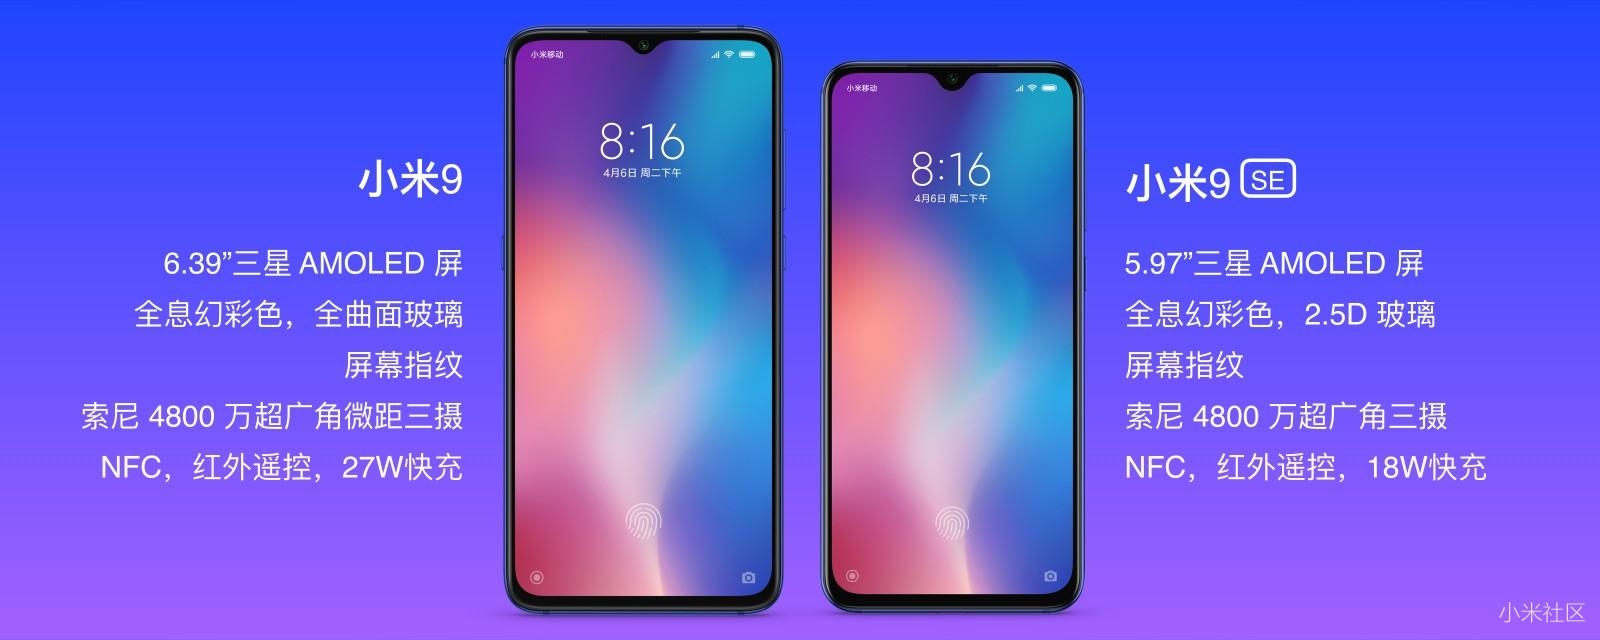 Xiaomi Mi 9 SE launched with Snapdragon 712 & triple cameras